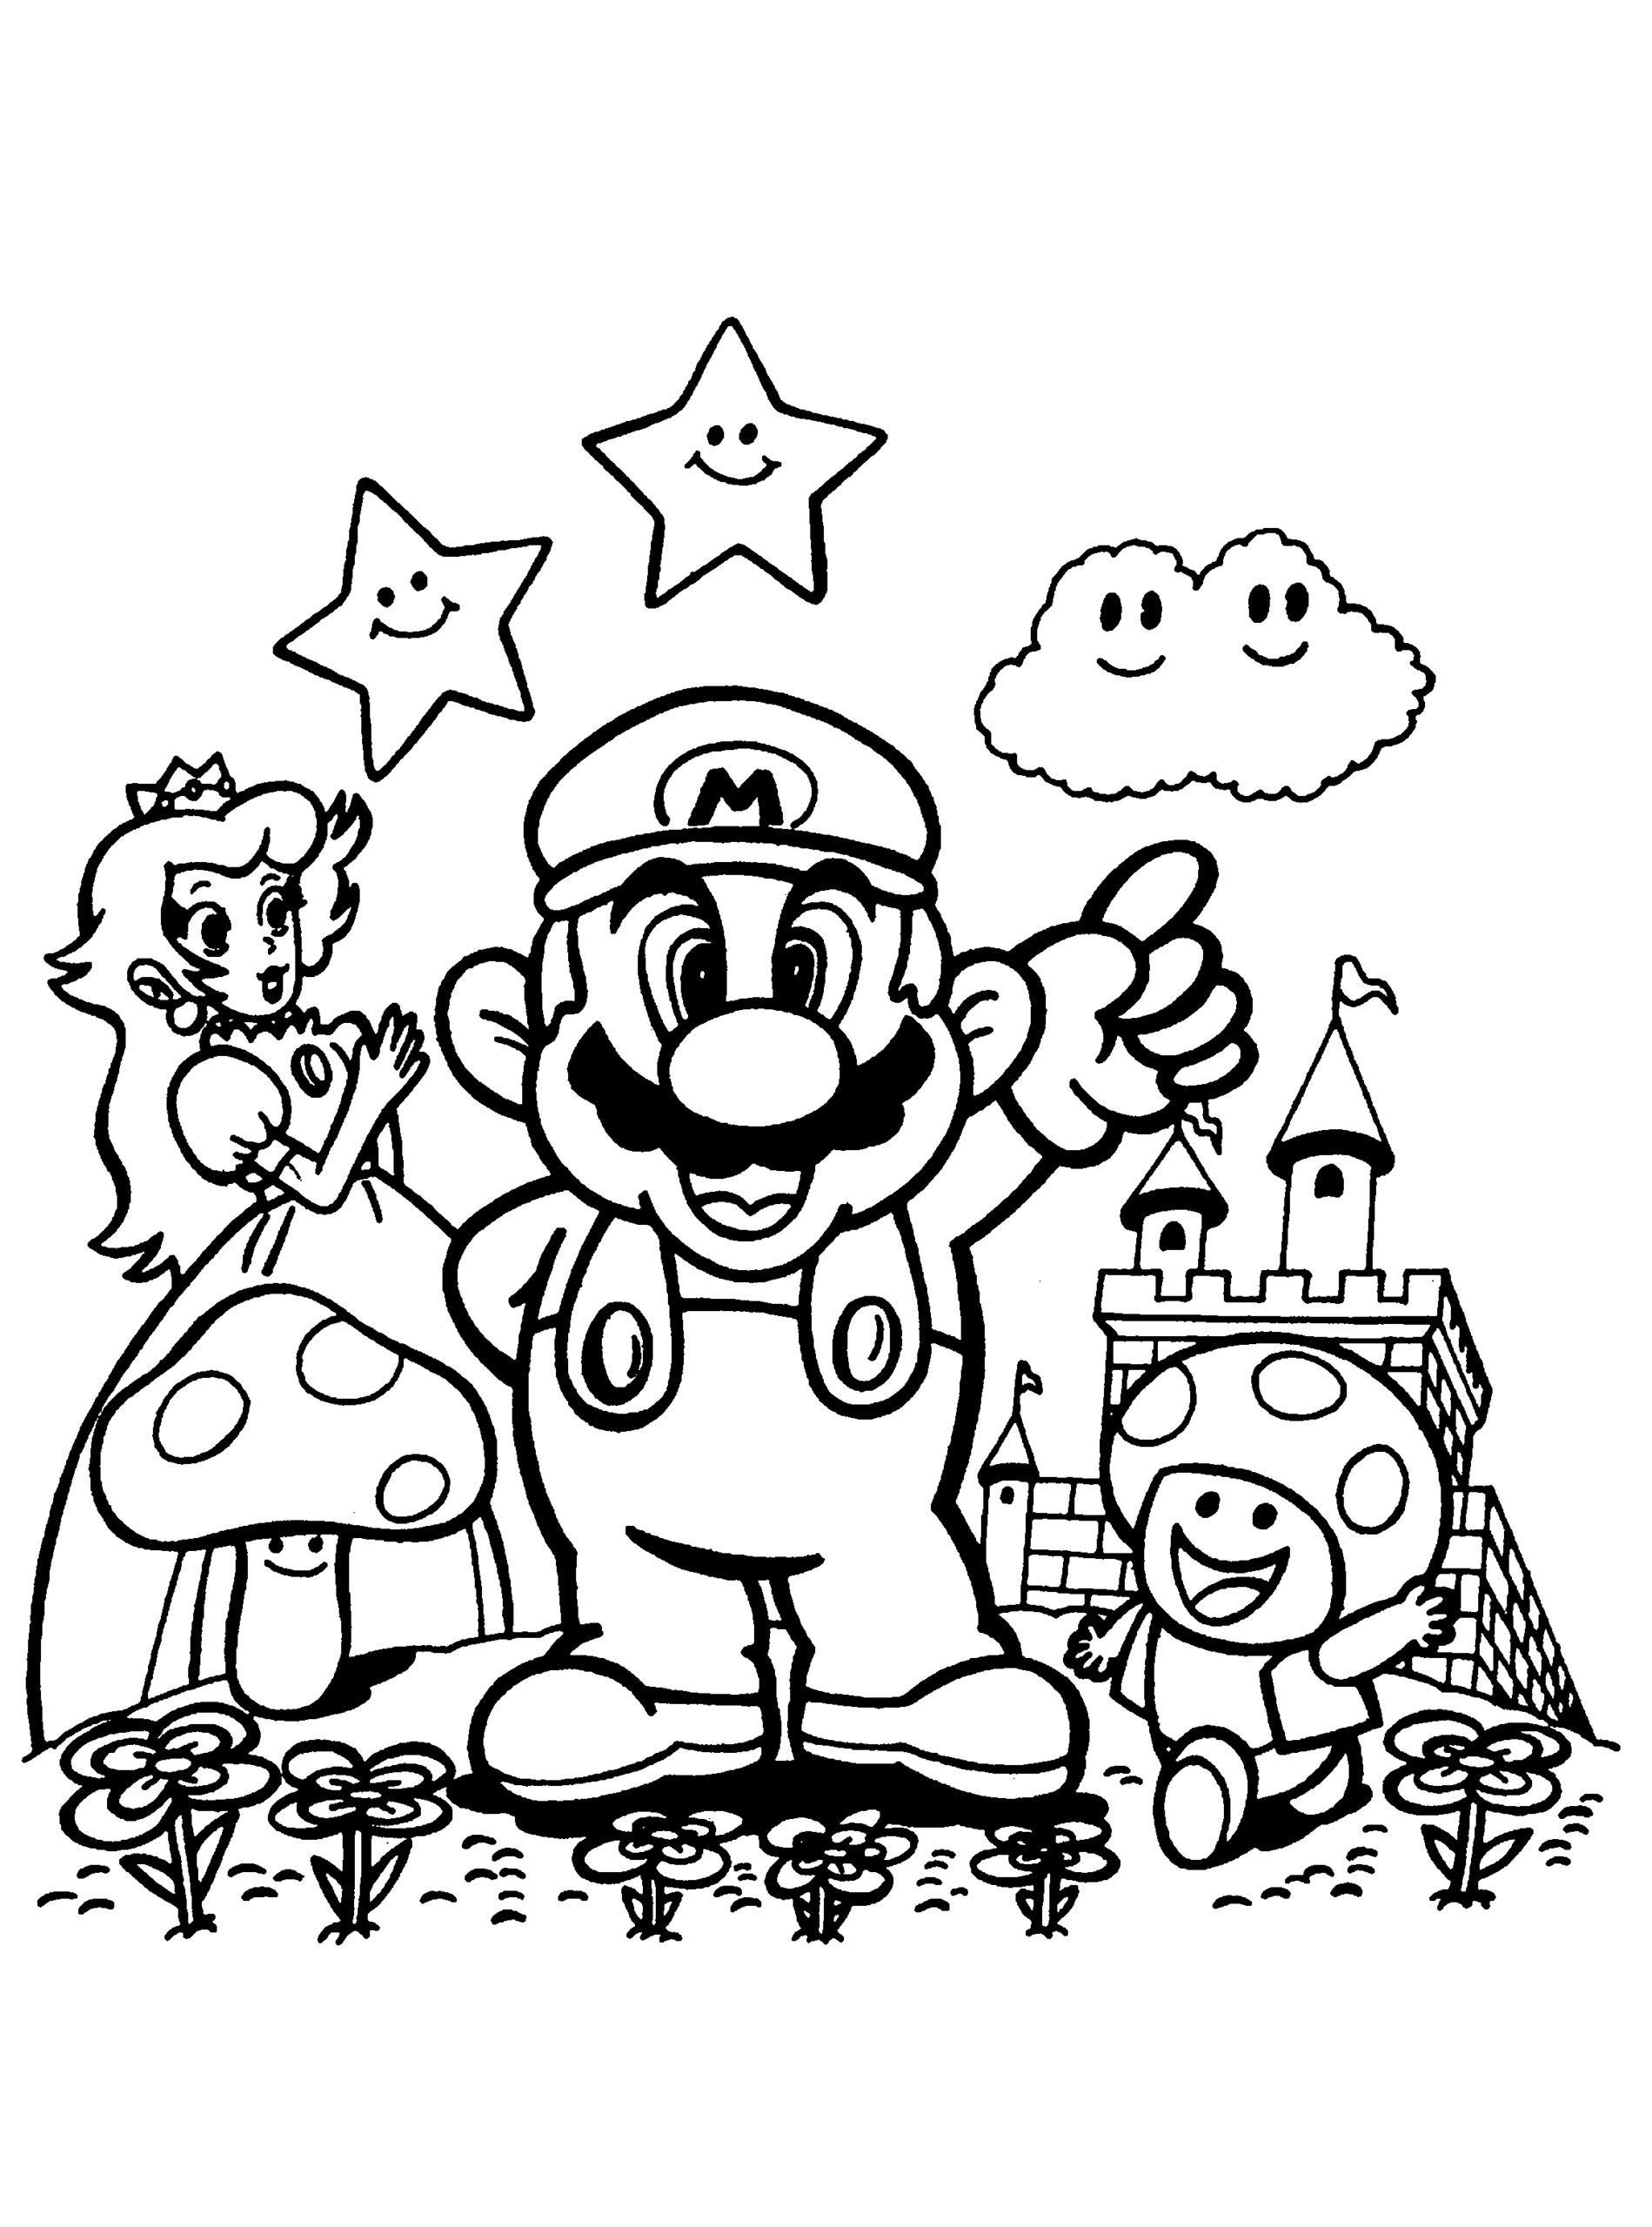 Super Mario Brothers Coloring Page Coloring Book Spongebob Coloring Pages Super Mario In 2020 Super Mario Coloring Pages Mario Coloring Pages Coloring Books